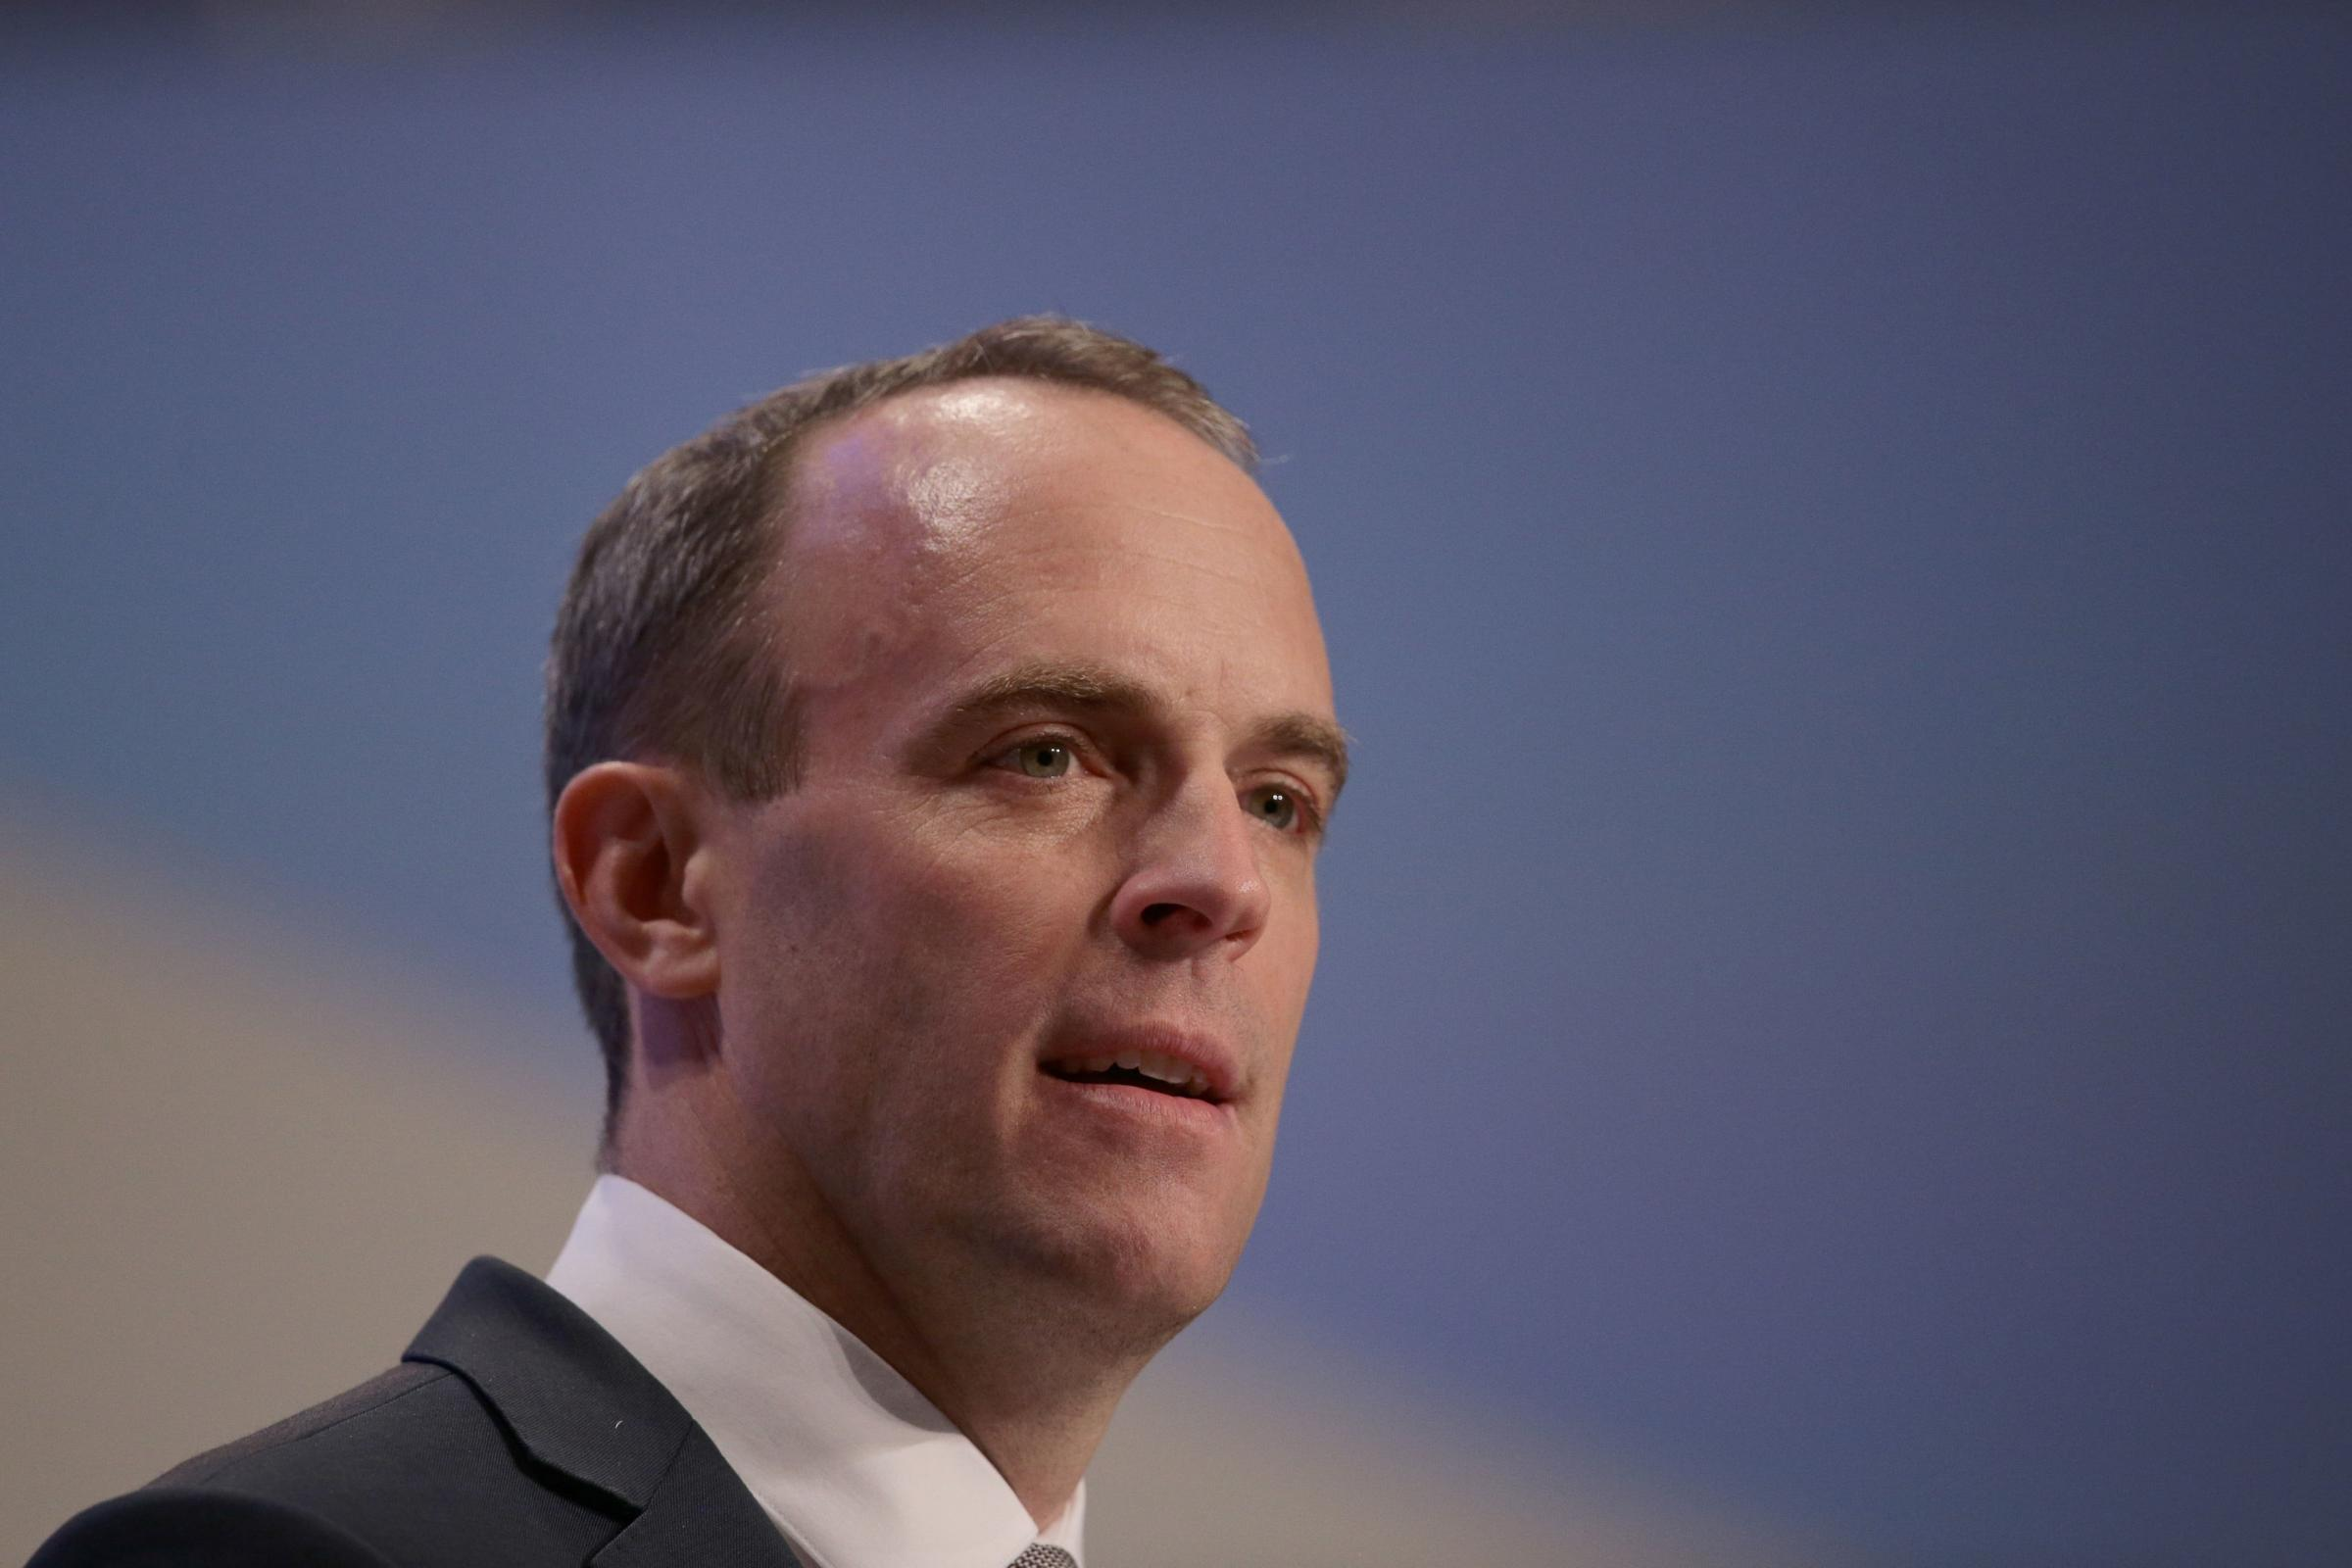 Brexit Secretary under fire after indicating he expects a deal in three weeks